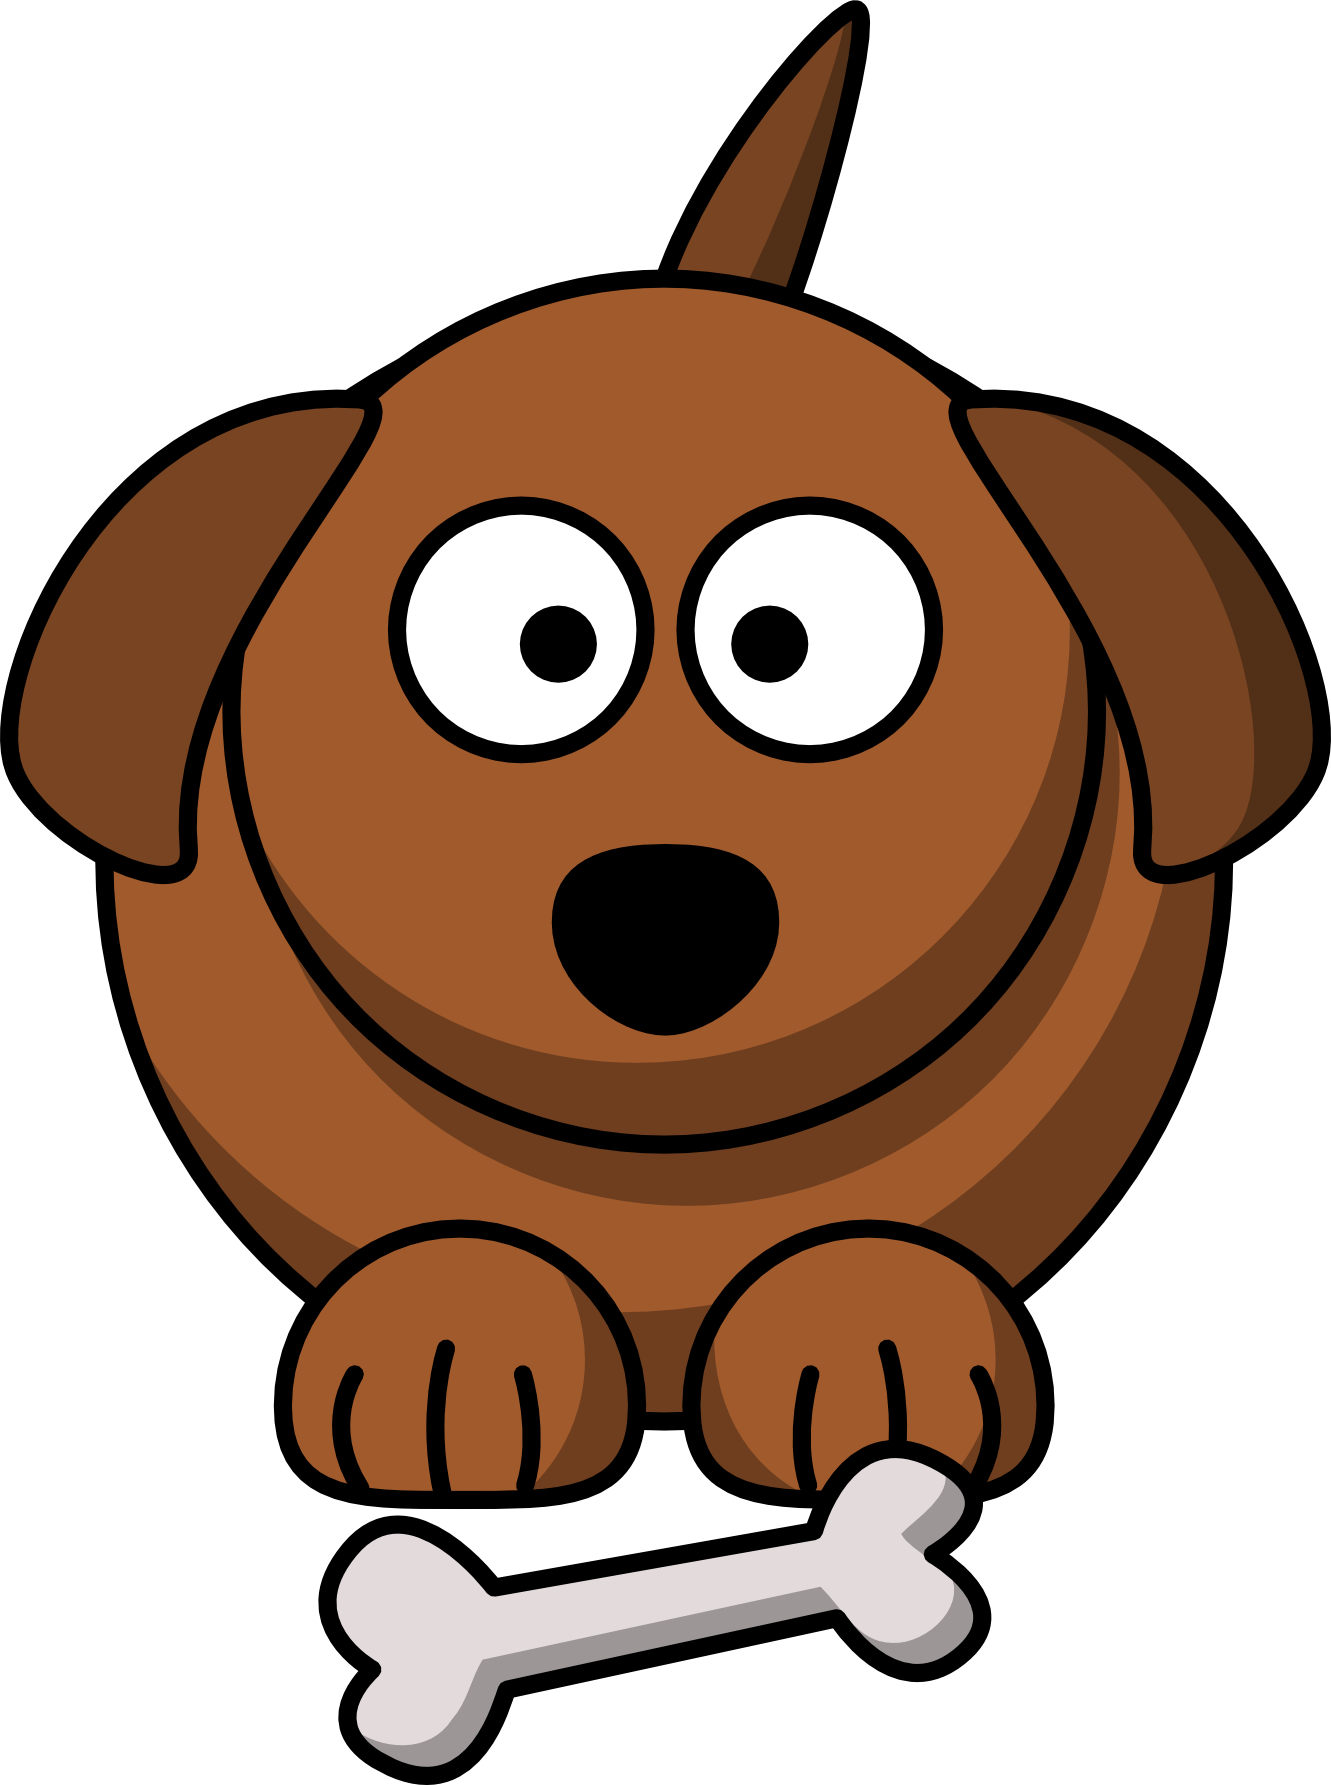 Pirate clipart dog, Pirate dog Transparent FREE for download.